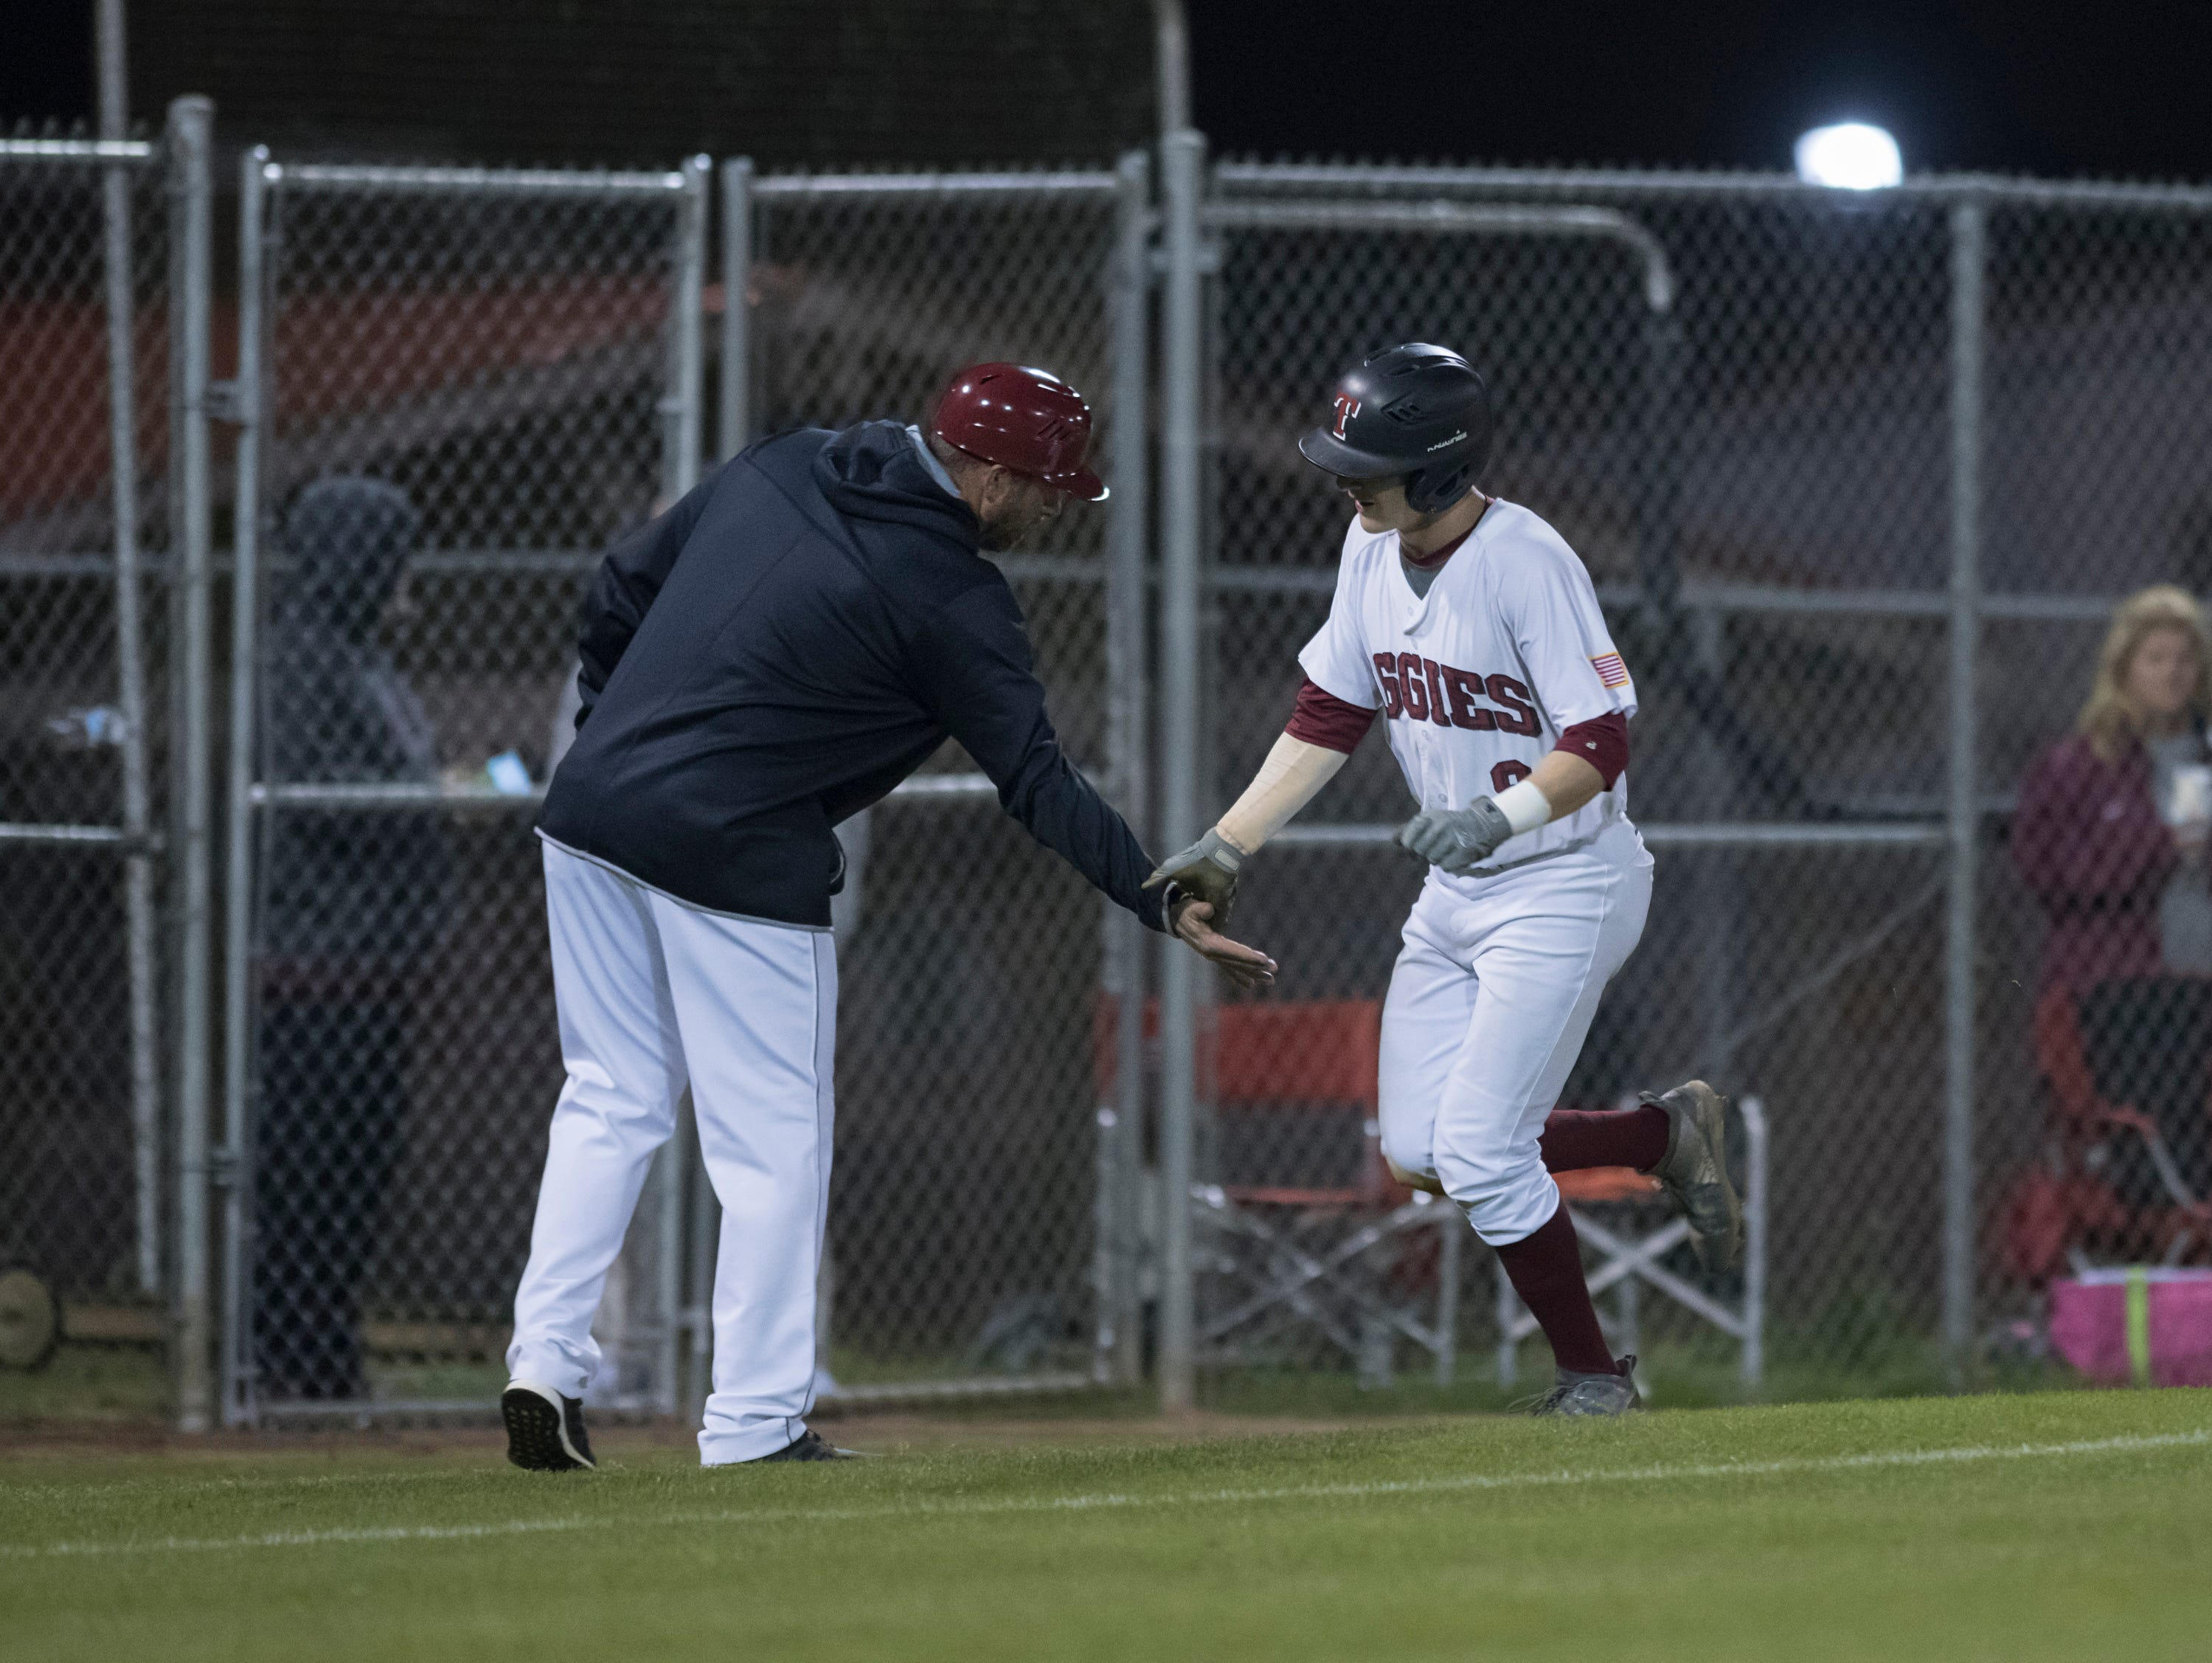 Mason Land (9) is congratulated while he rounds third base on a home run as the Aggies take a 2-0 lead during the Pine Forest vs Tate baseball game at Tate High School on Thursday, March 7, 2019.  The Aggies won 4-3.